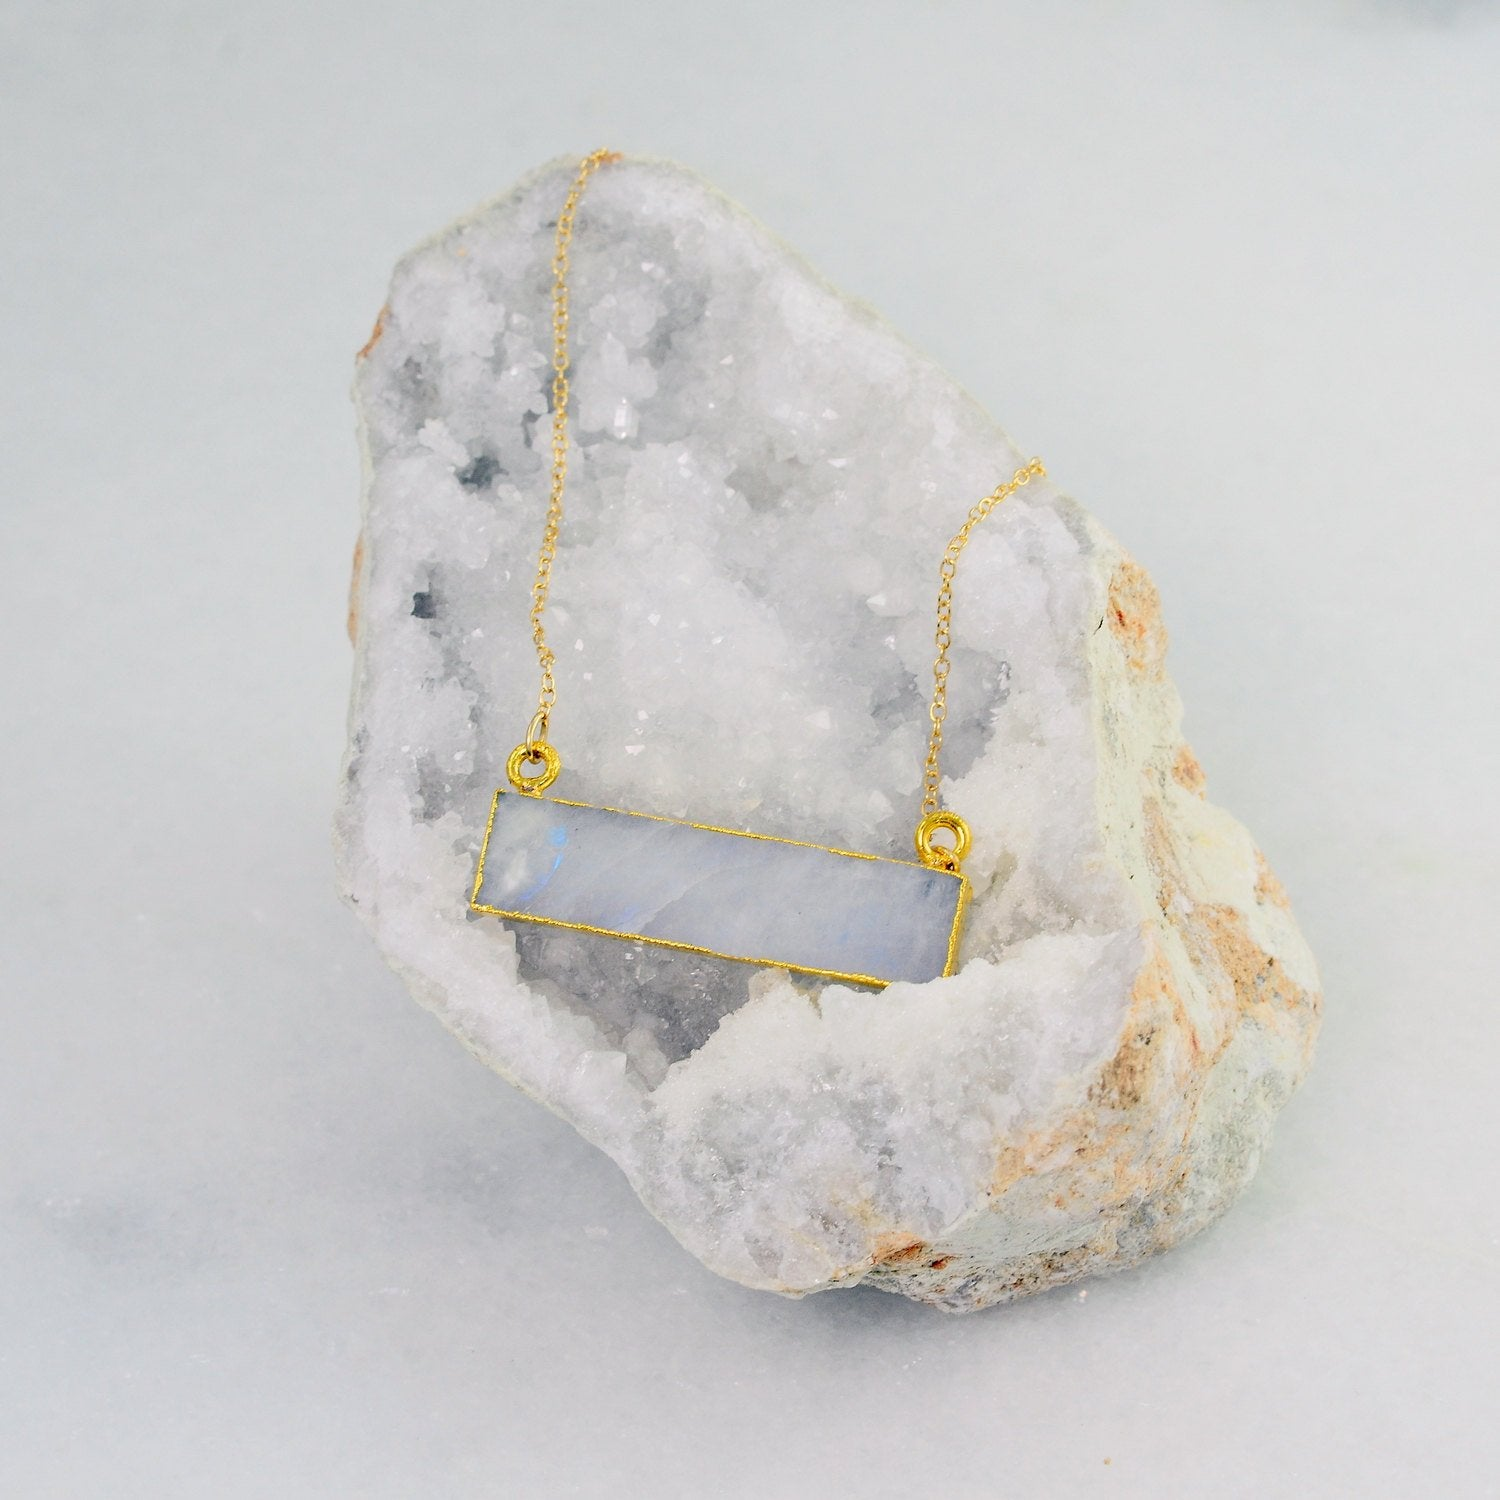 Moonstone Necklace - Gemstone Bar Necklace - Rectangle Stone Necklace - Statement Necklace - Raw Stone Necklace